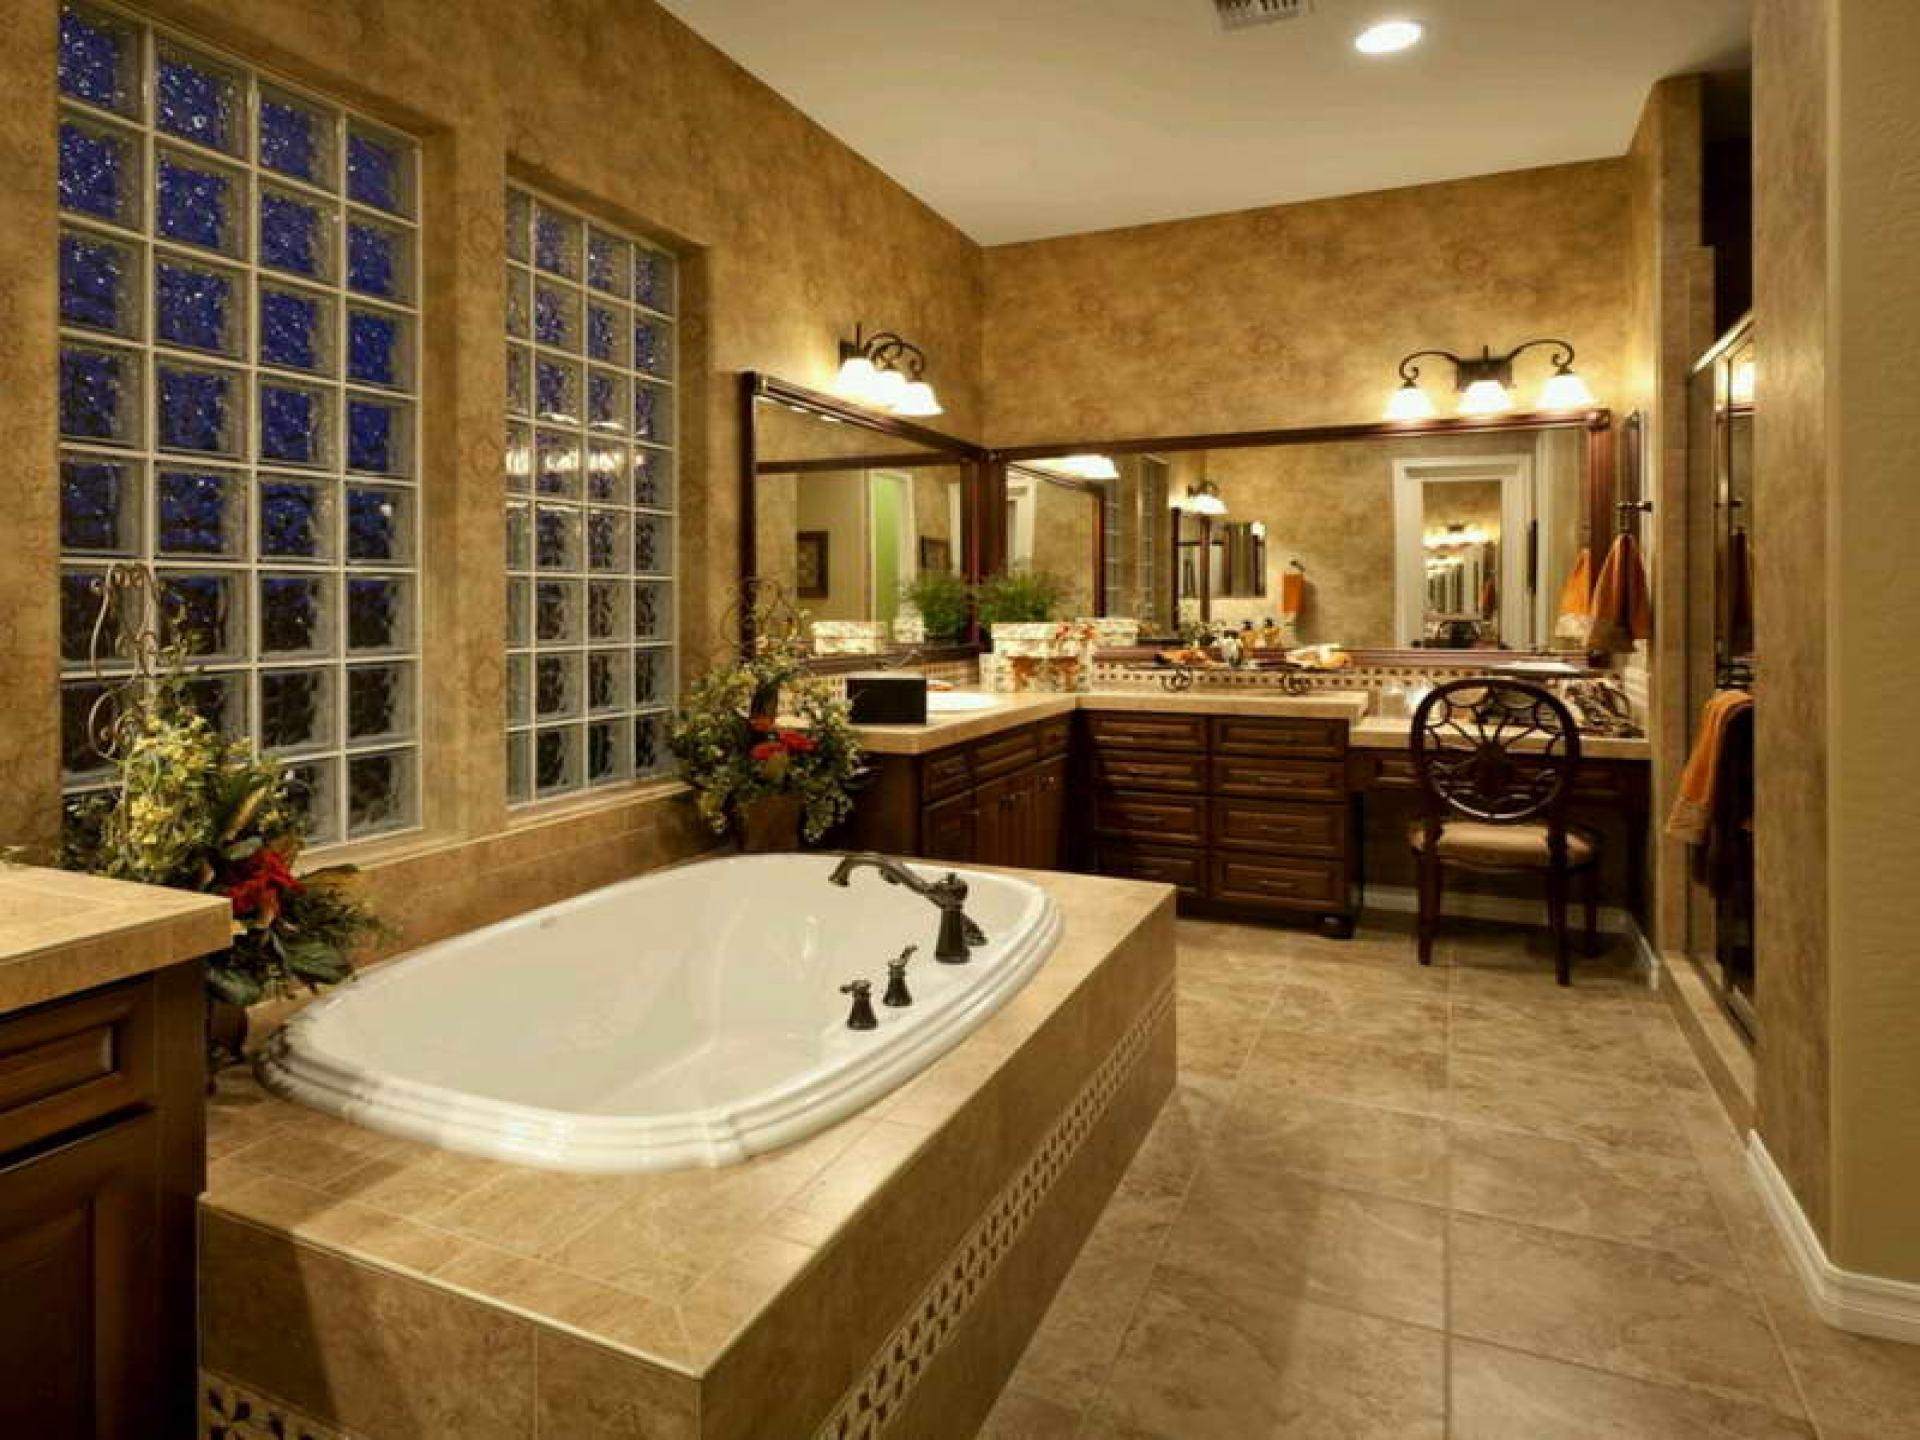 simply 100 amazing bathroom ideas youll fall in love with